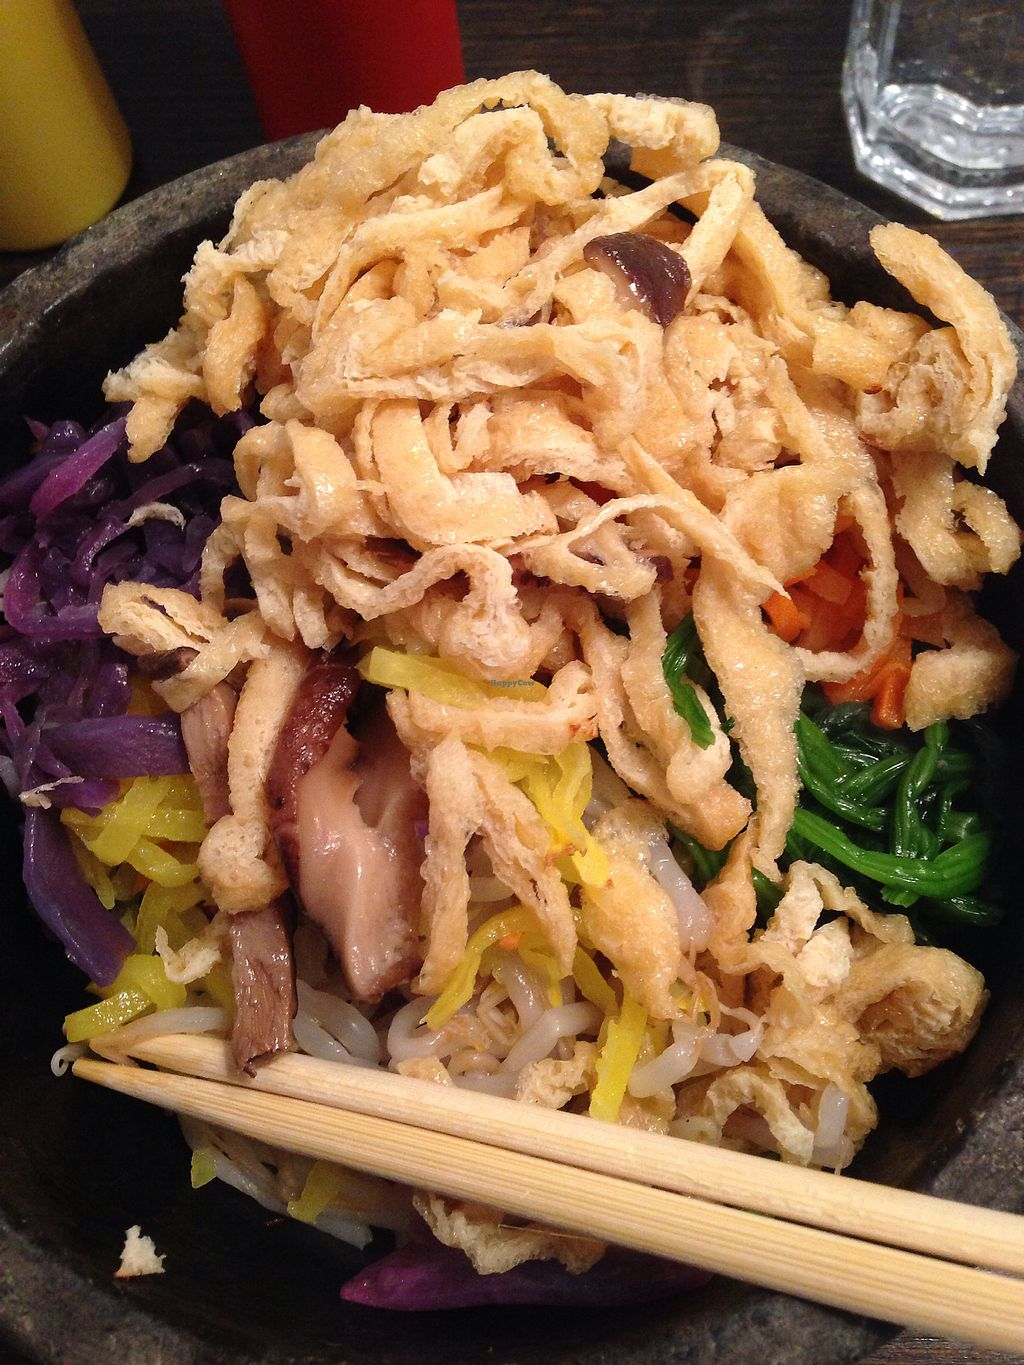 """Photo of Bibimbap Charlotte St  by <a href=""""/members/profile/Bern"""">Bern</a> <br/>Sweet tofu, brown rice & lots of veg for £10 <br/> October 7, 2017  - <a href='/contact/abuse/image/56004/312837'>Report</a>"""